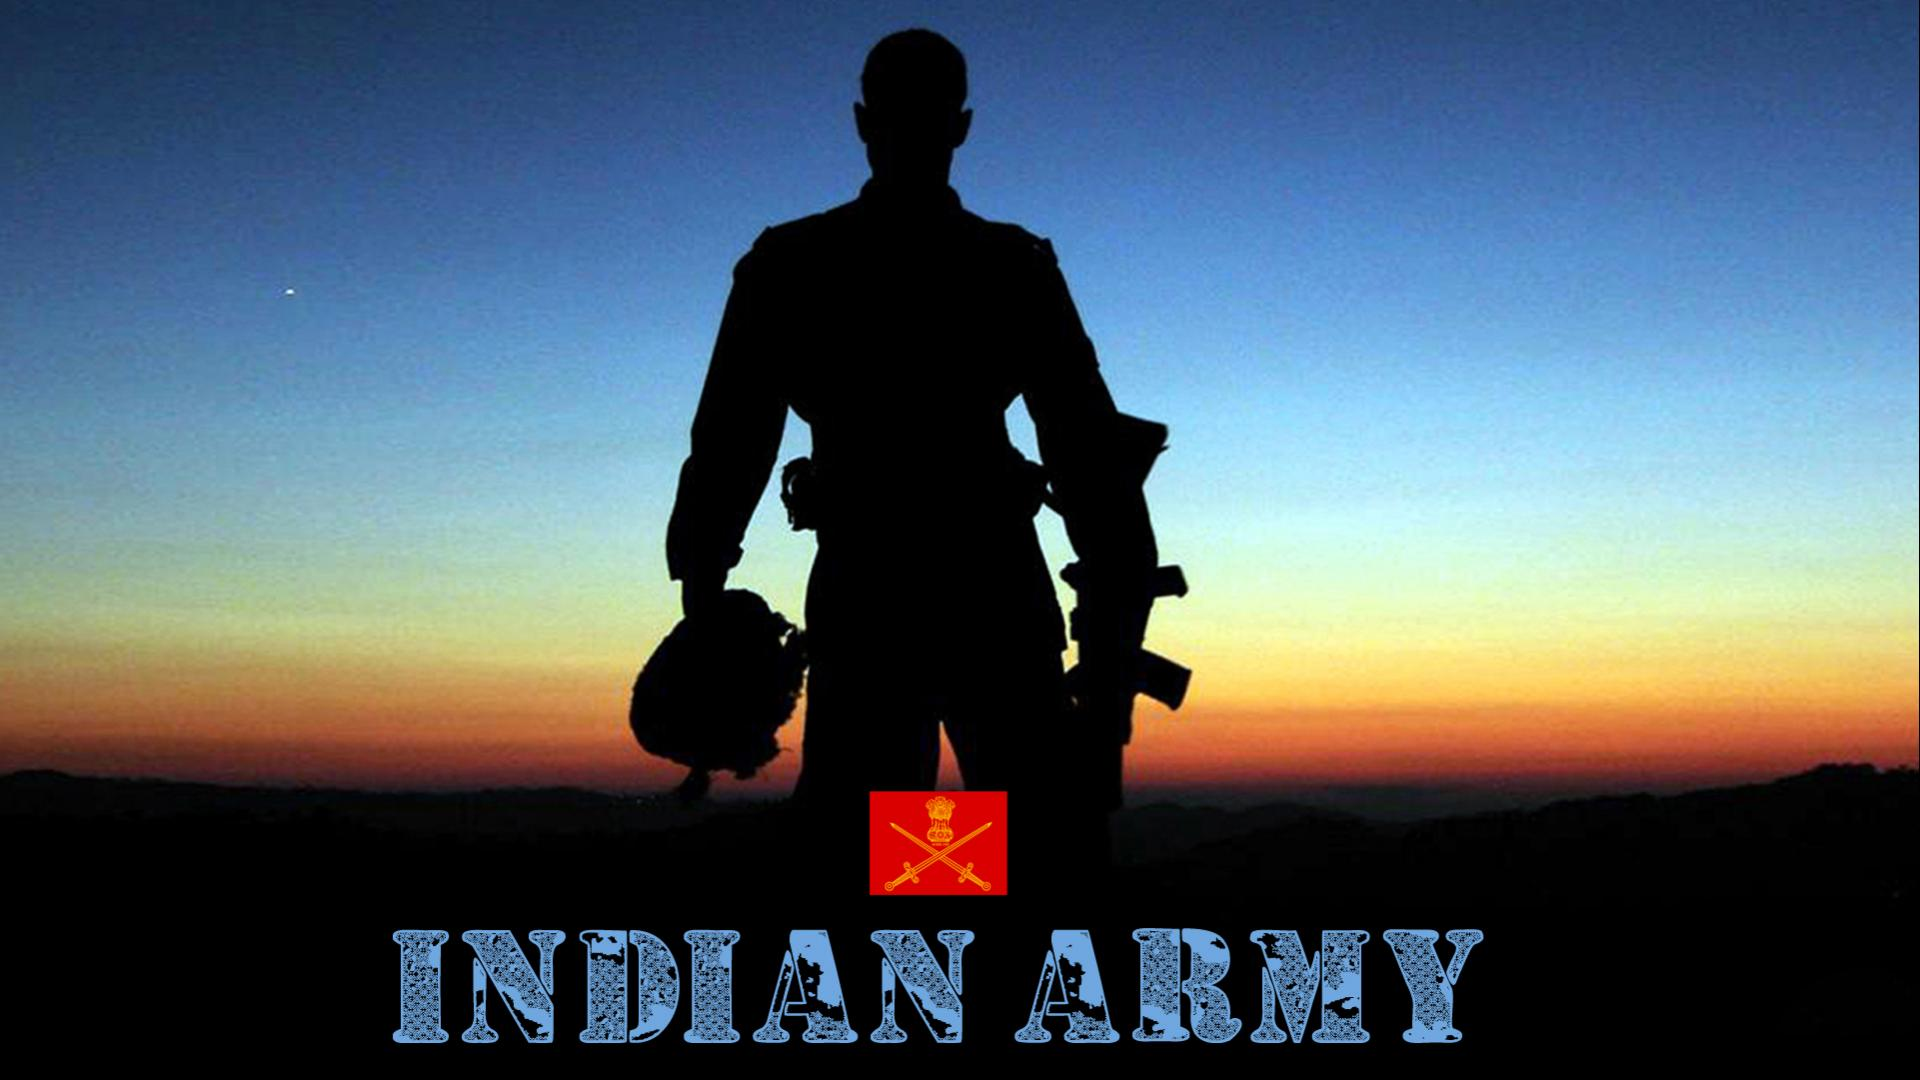 Indian Army Hd Wallpapers 1080p Download With Picture Of Soldier